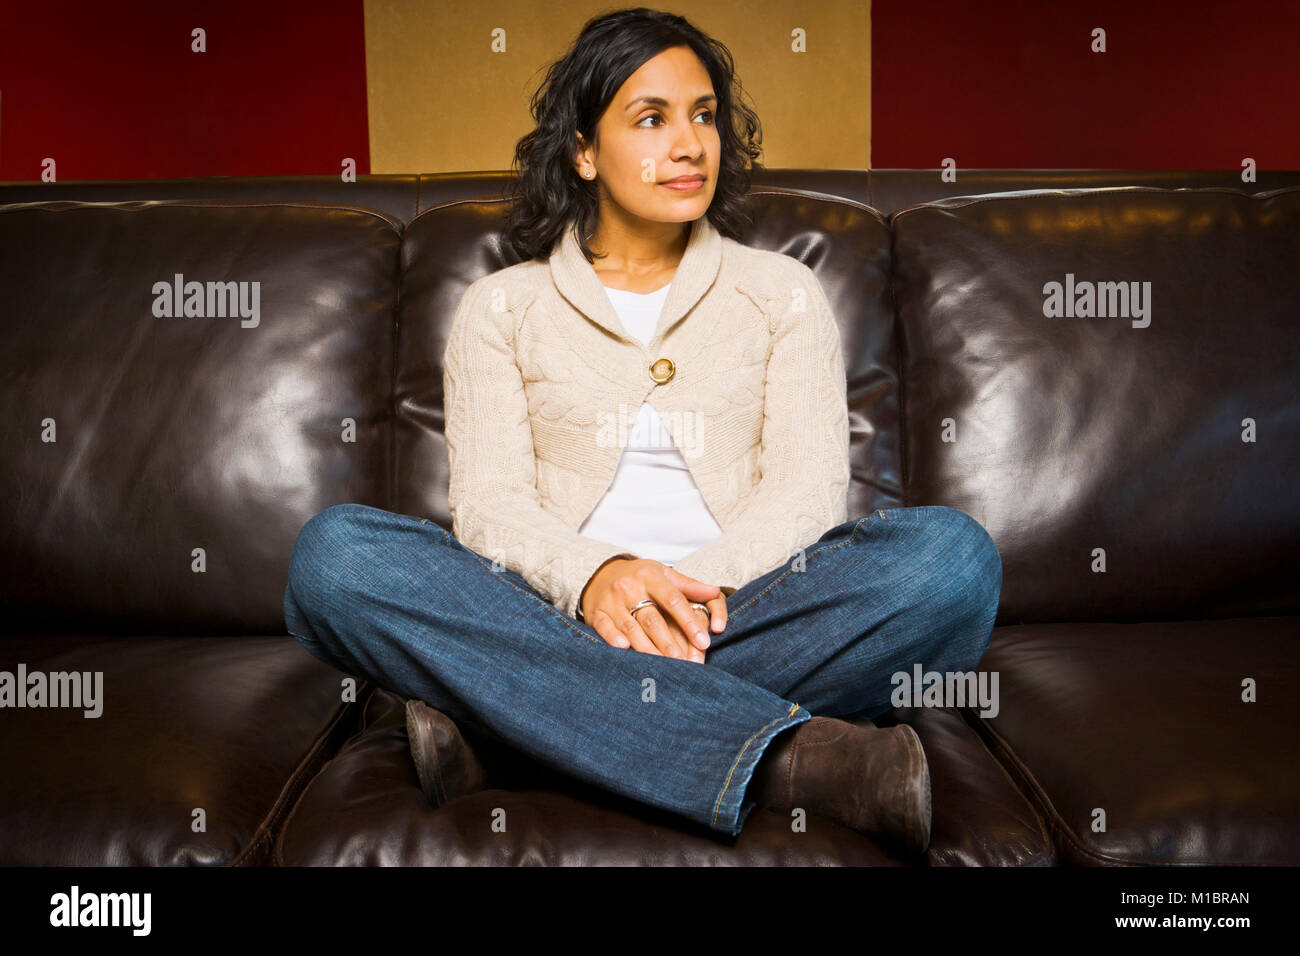 Portrait of a young Sri- Lanken American woman seated on a couch and looking off to the side. - Stock Image